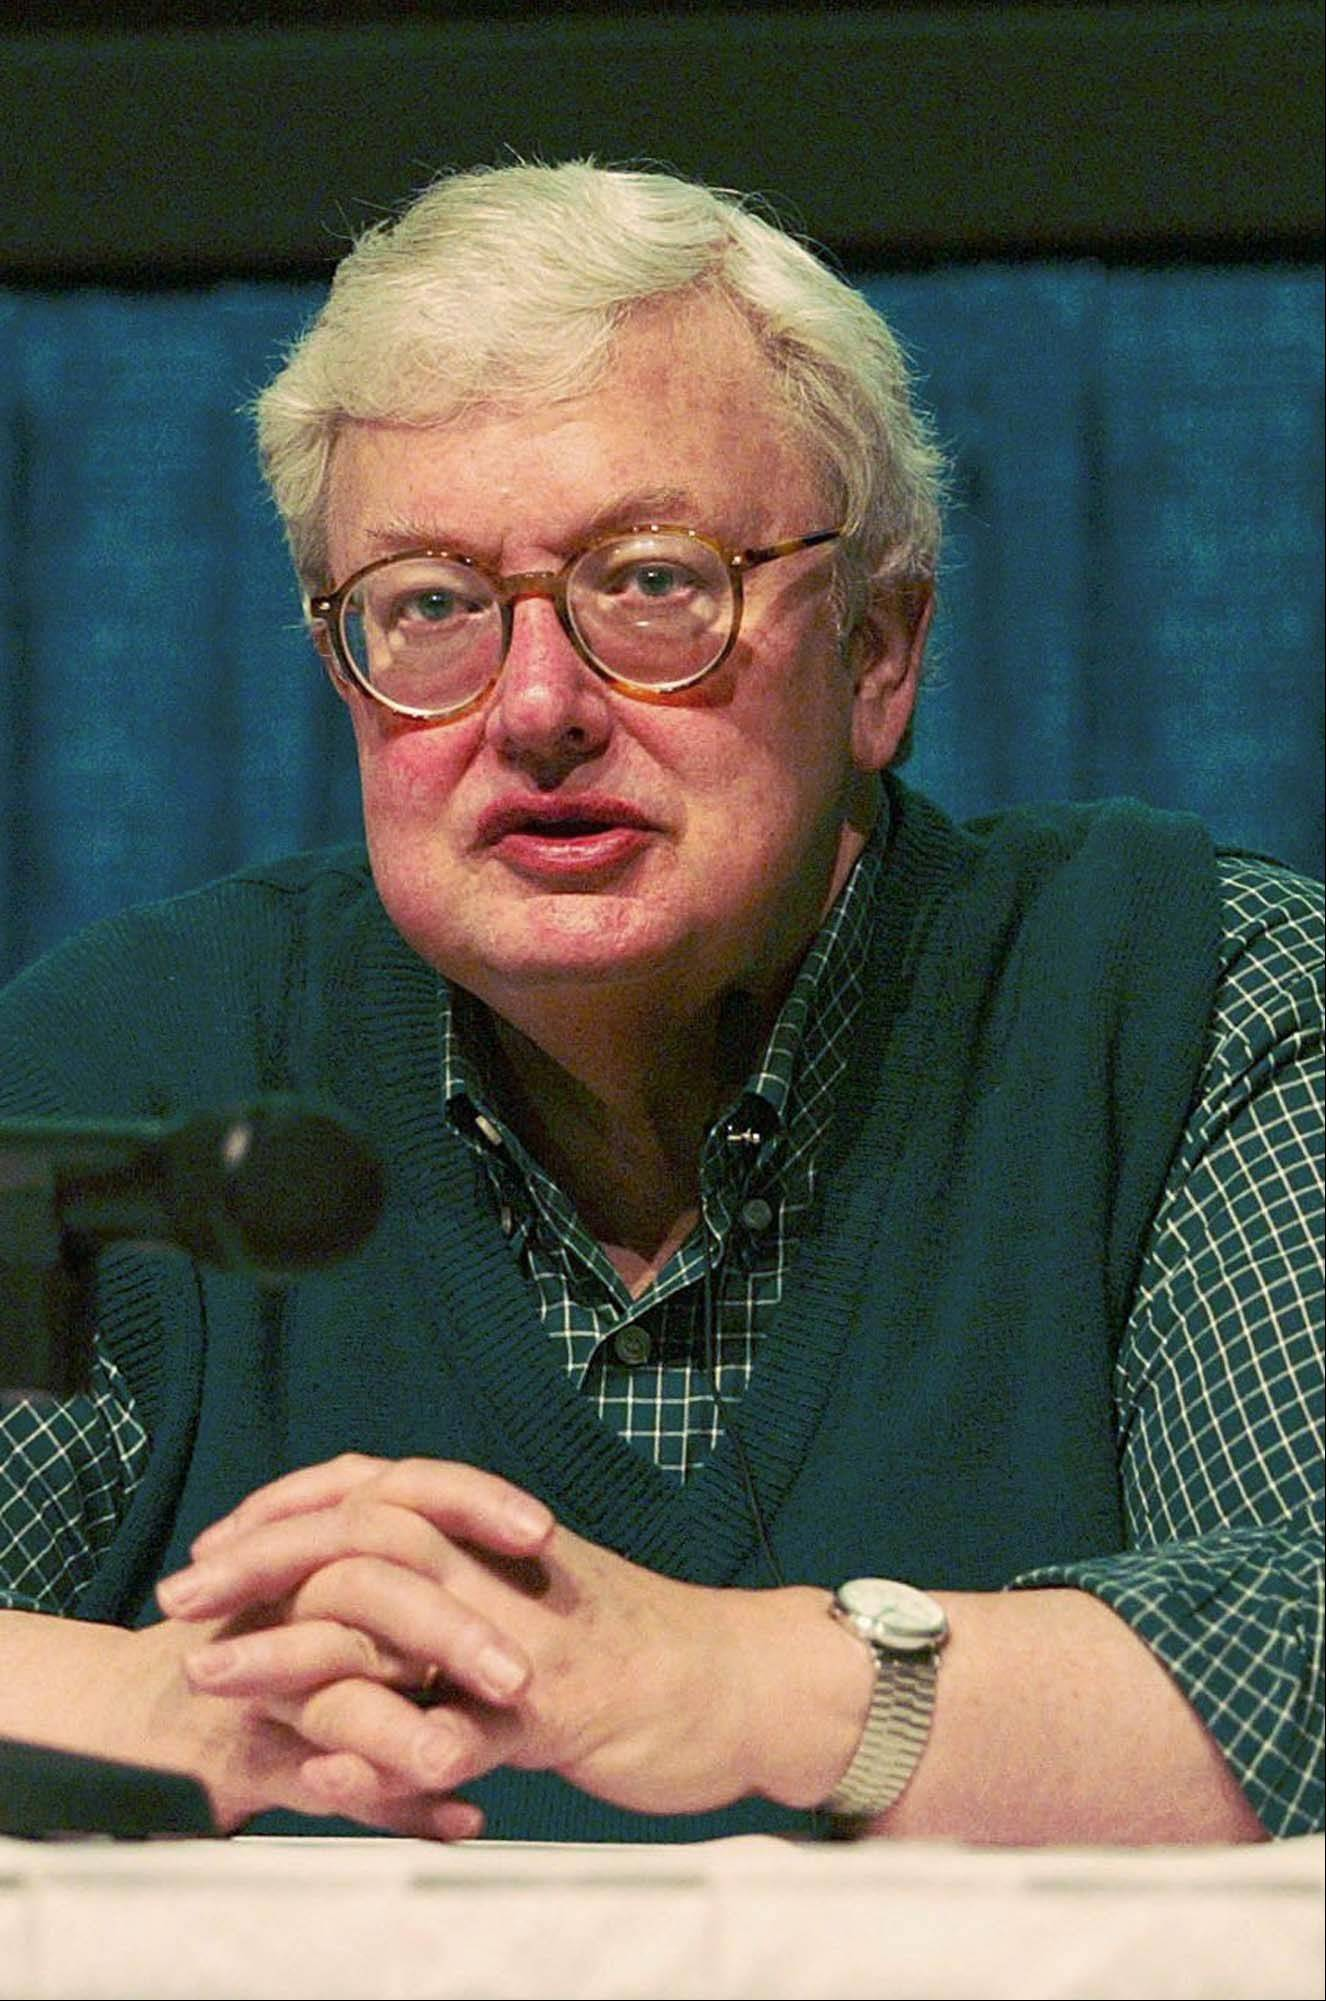 Film critic Roger Ebert is seen in this 1994 file photo. Ebert, in town for his annual Overlooked Film Festival, slipped on a newly waxed floor and suffered two hairline fractures in his left shoulder Saturday, April 27, 2002, in the student union at the University of Illinois.